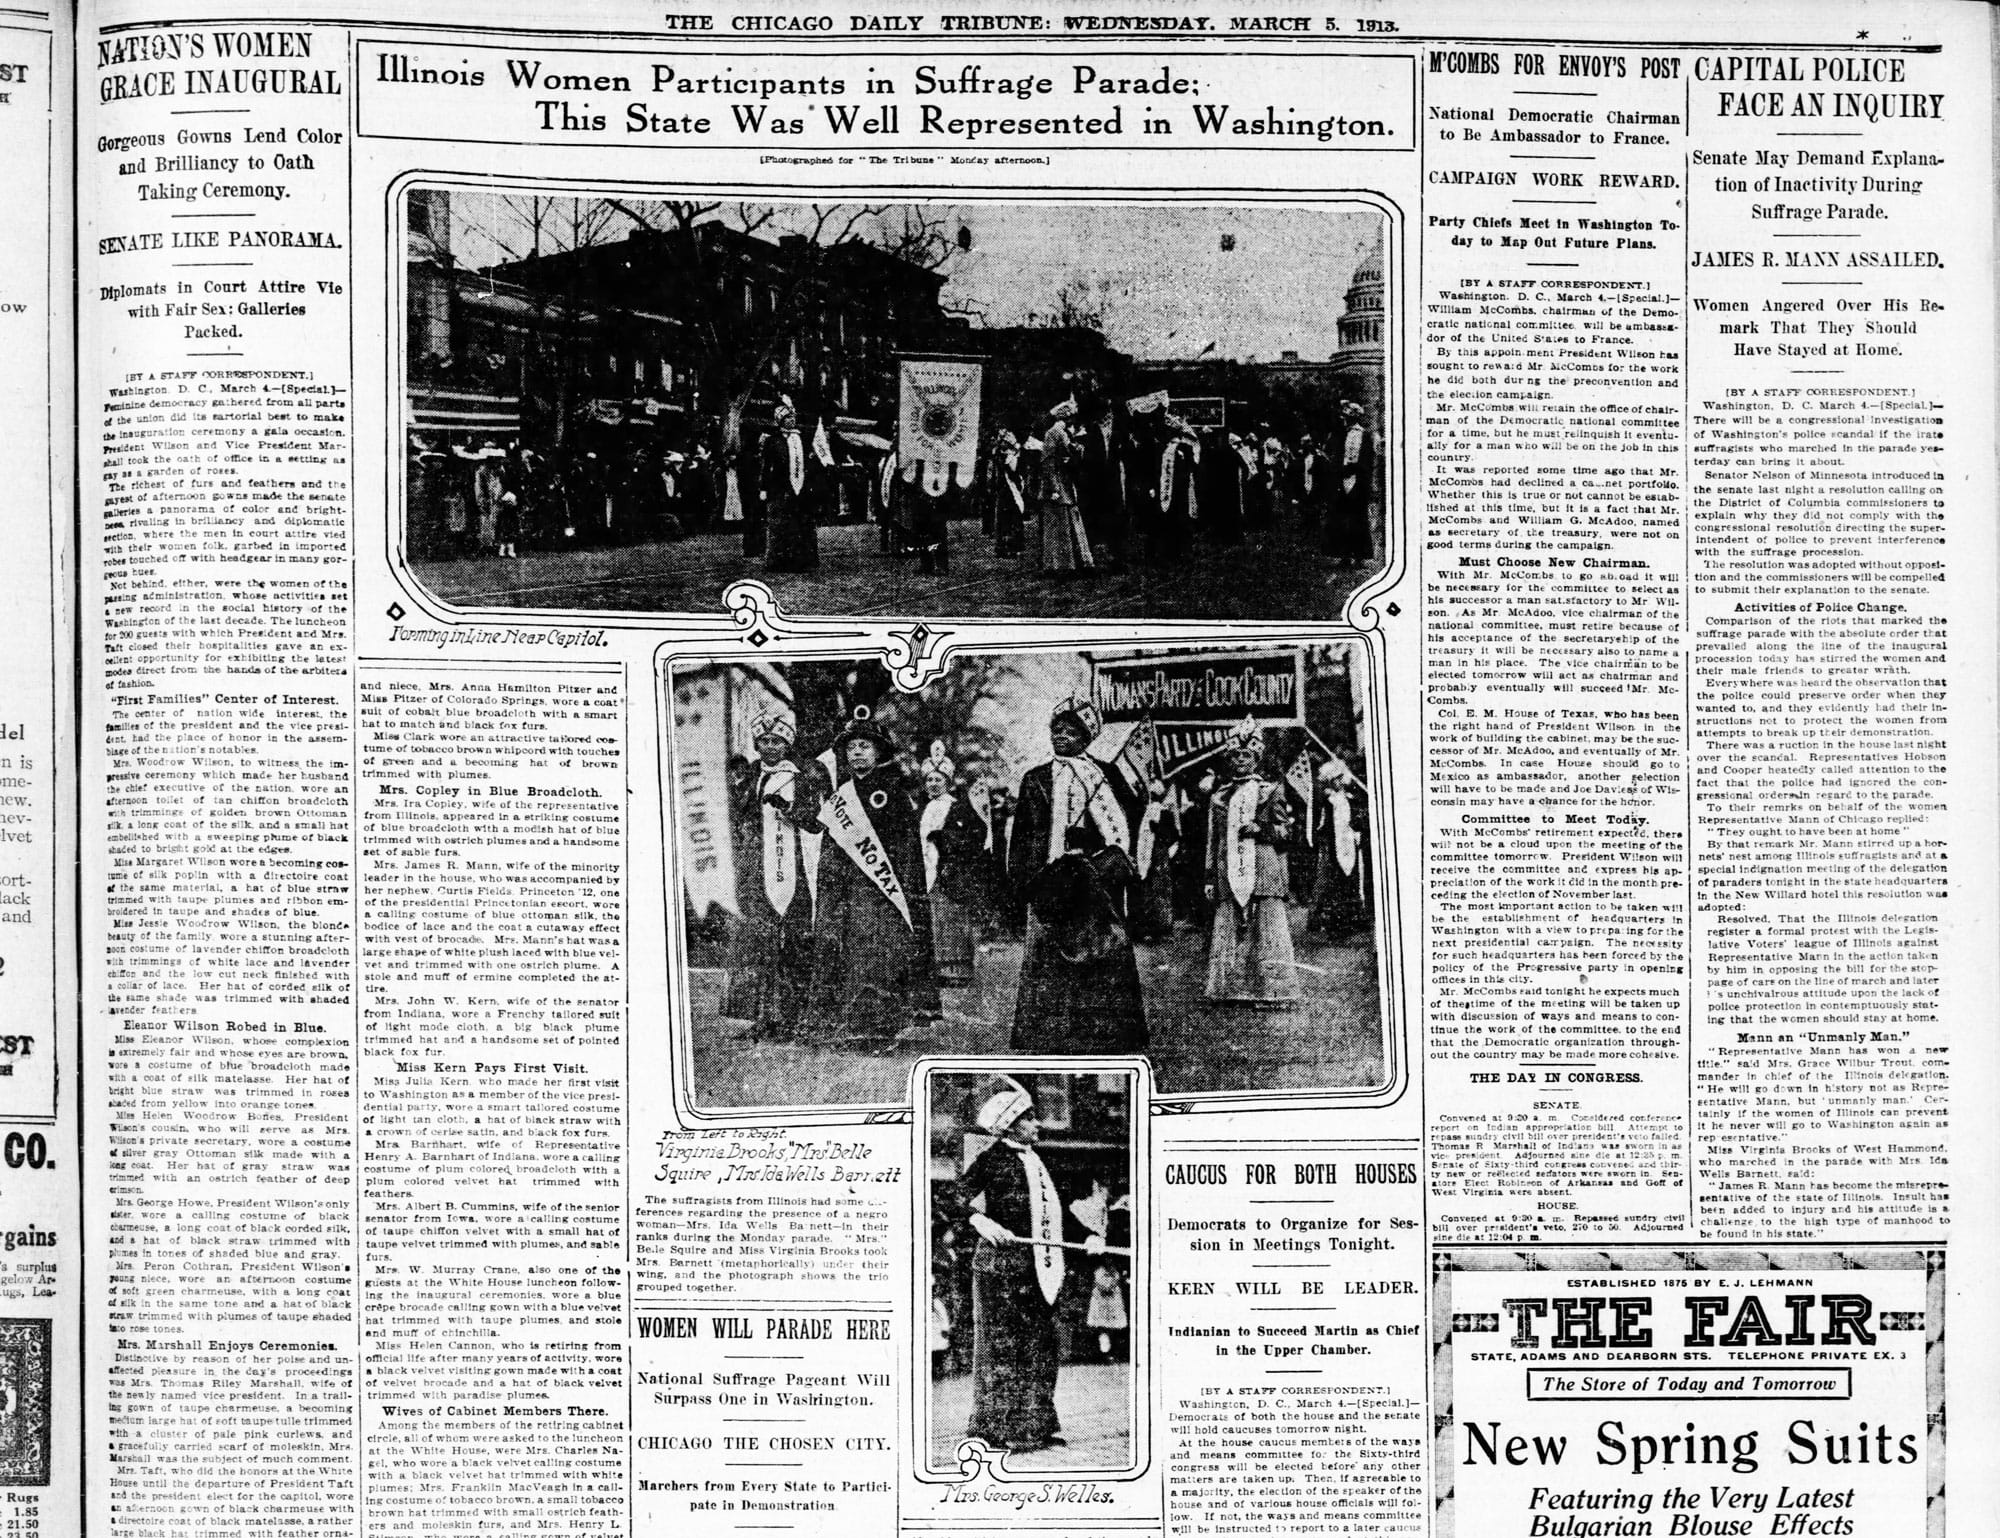 Chicago Daily Tribune newspaper spread from March 5, 1913